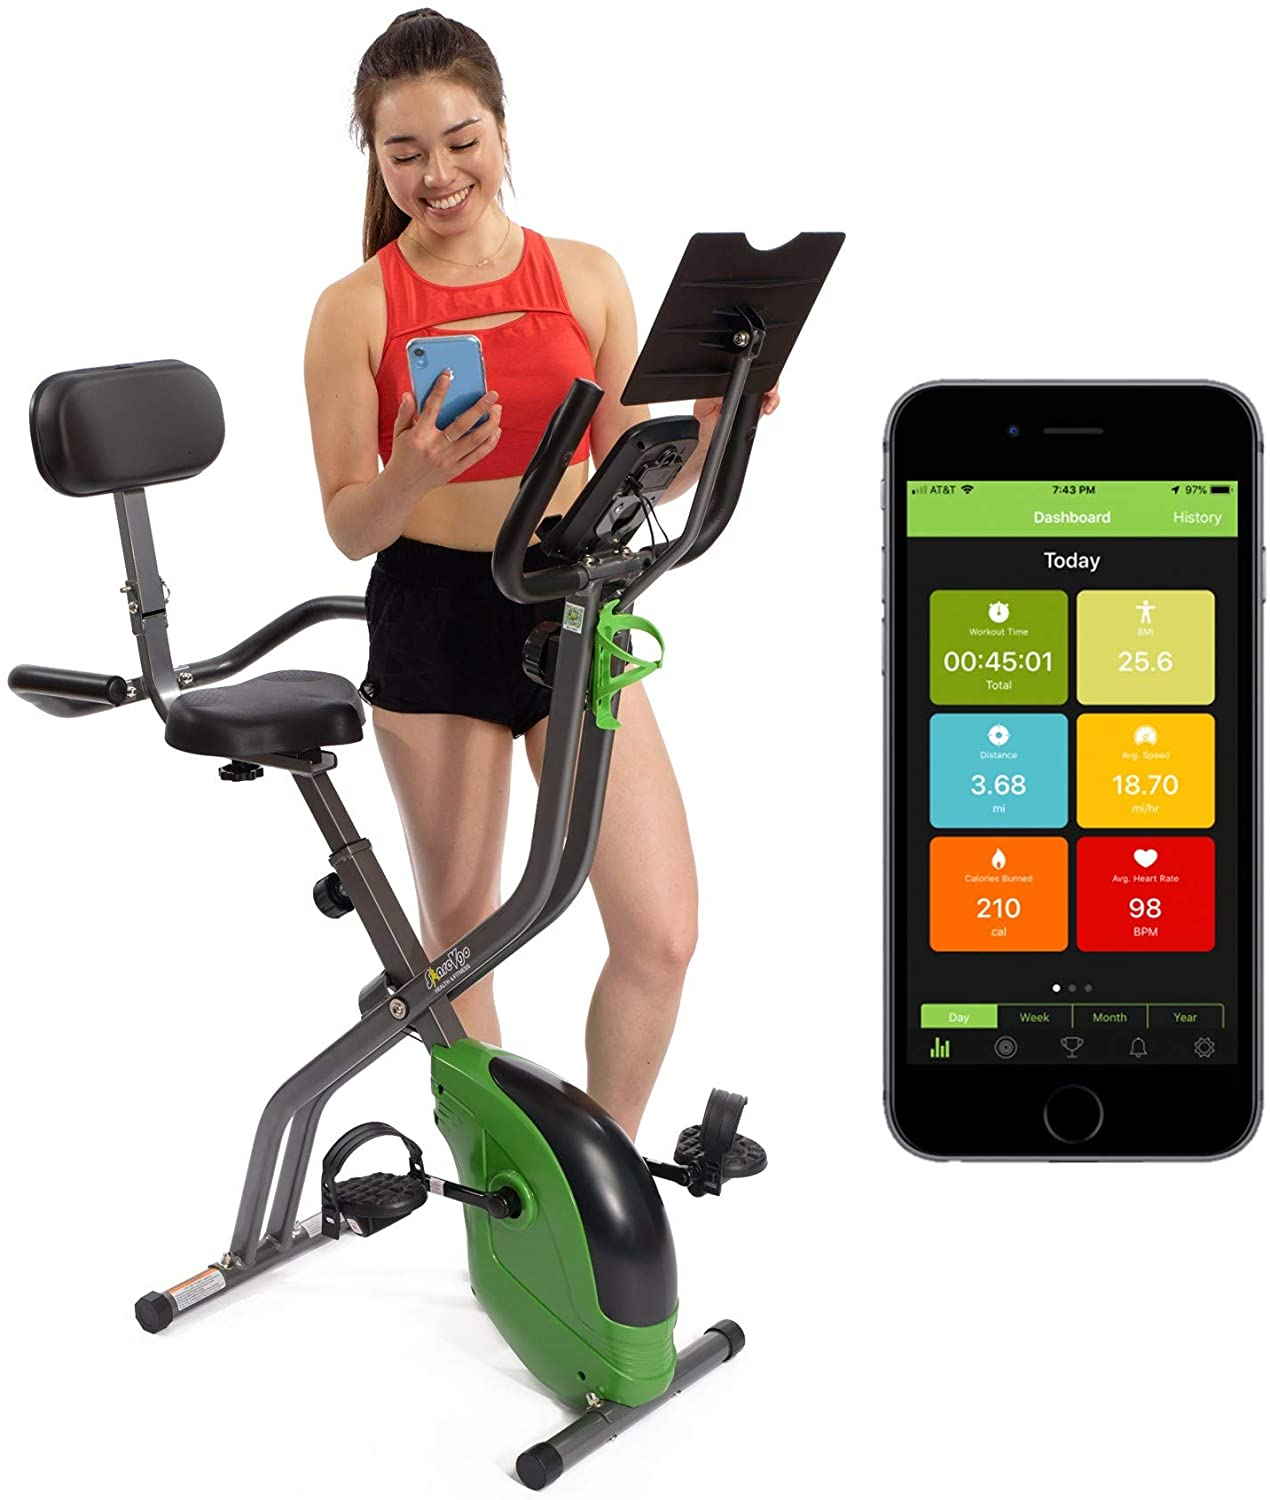 Top 10 Best Folding Exercise Bike Reviews 2020 10